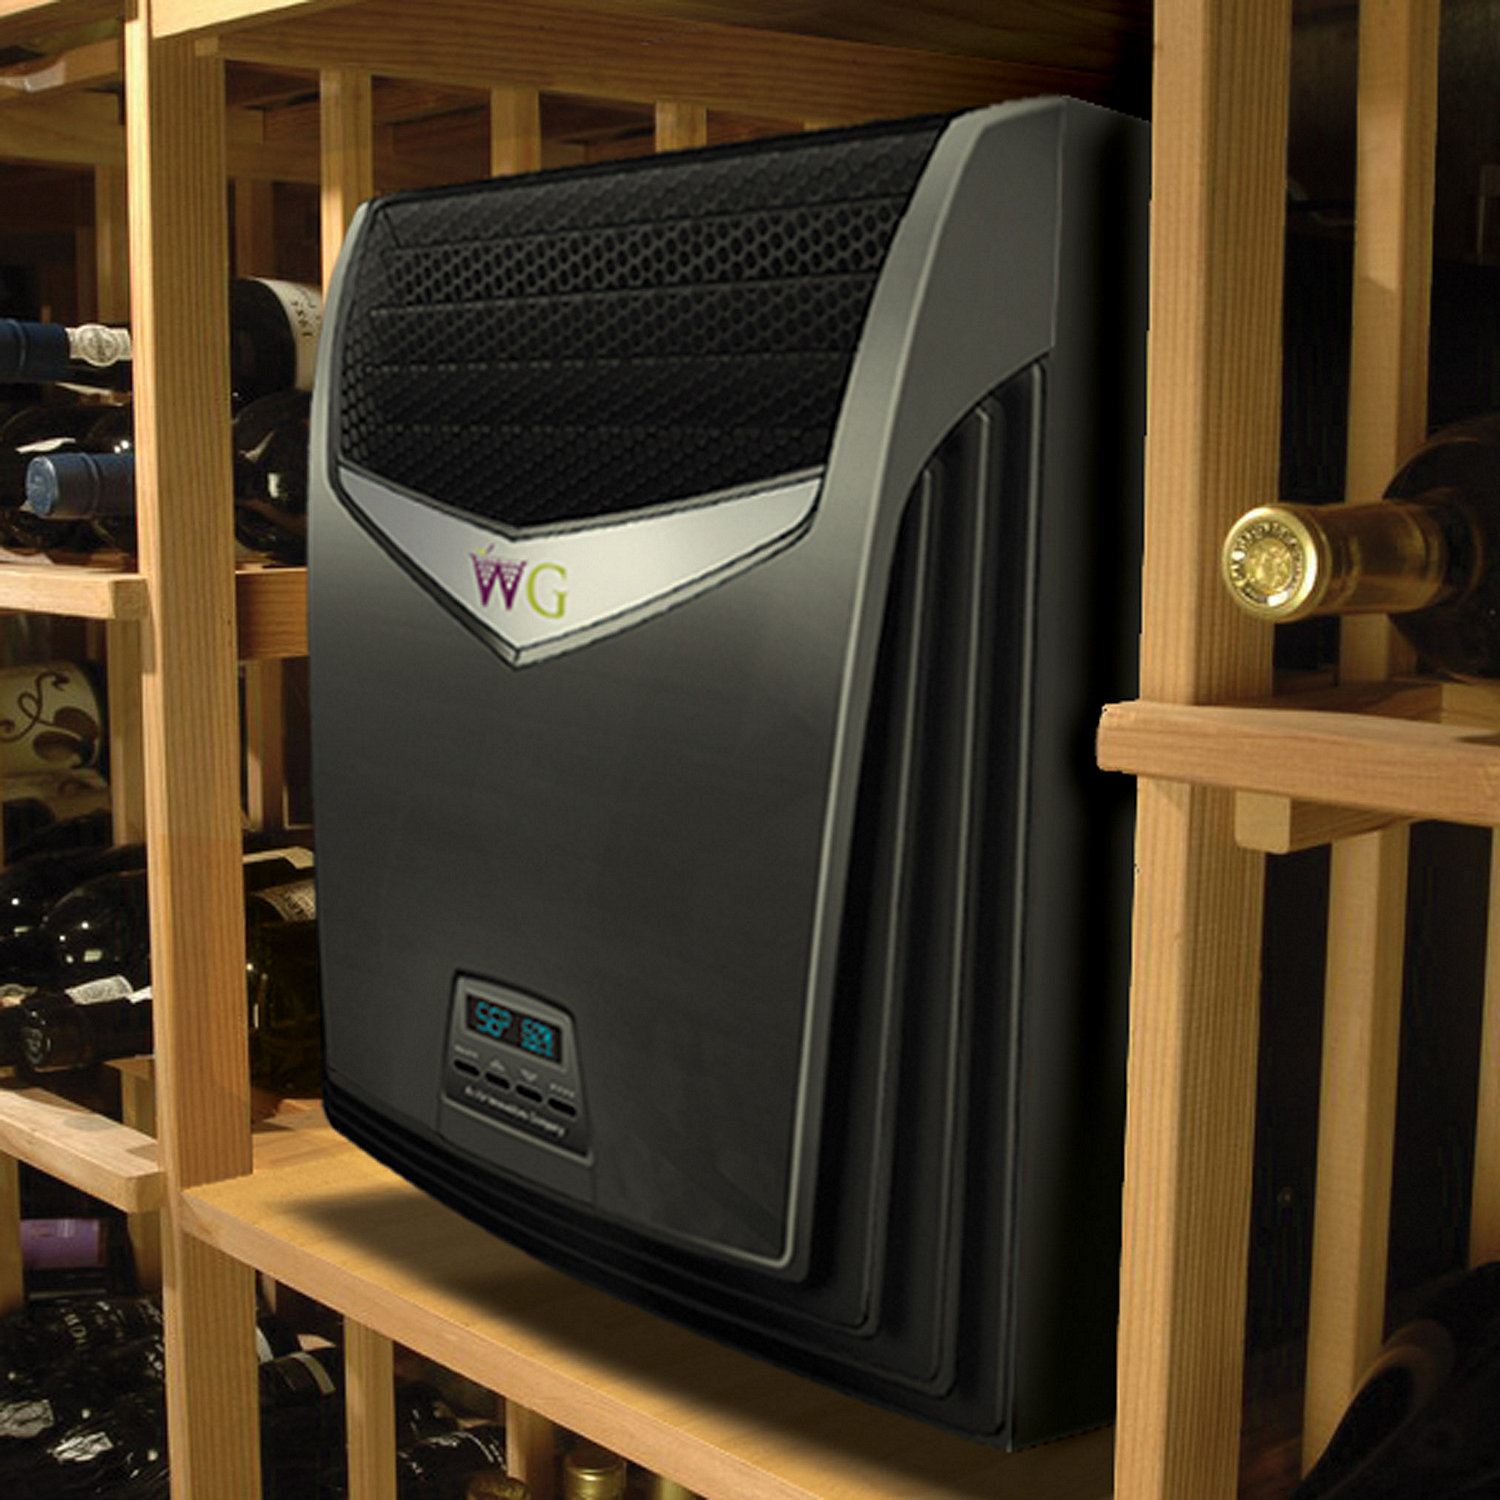 Wine Guardian TTW009 Through-the-Wall Wine Cellar Cooling Unit & Through The Wall Wine Cellar Cooling Units - Wine Enthusiast